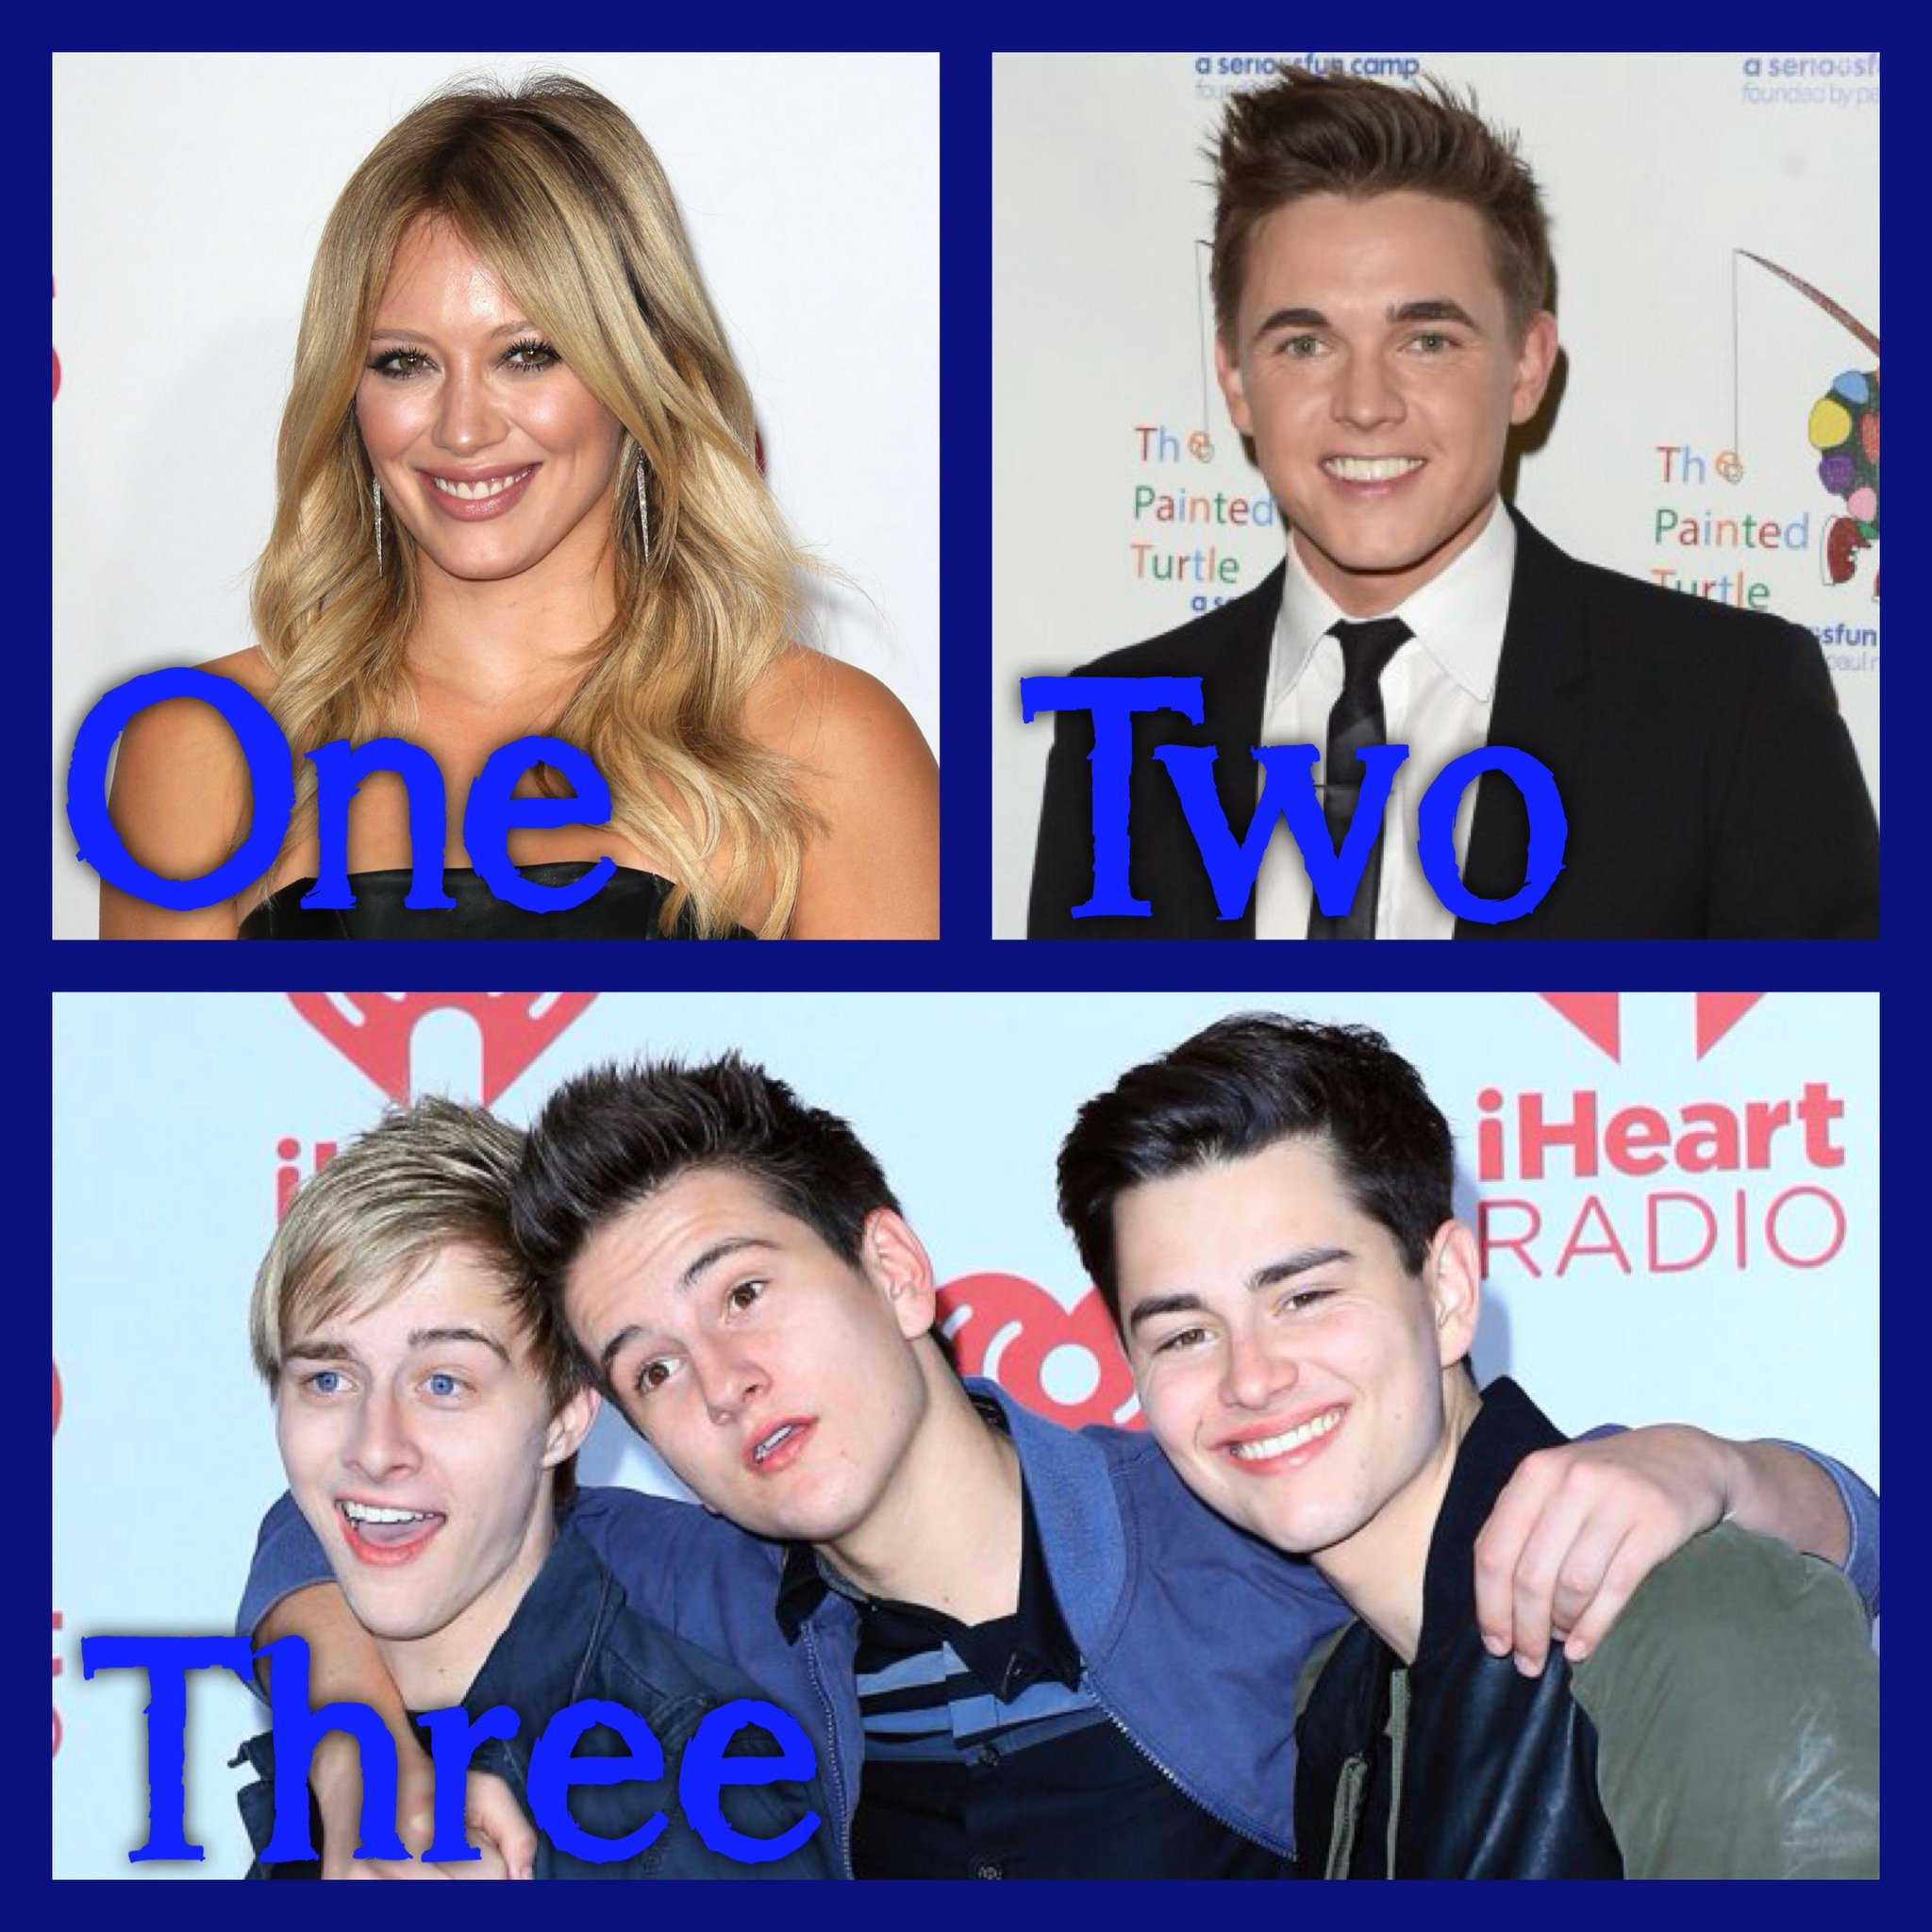 RT @radiodisney: Monday's #RDTop3: 1. @HilaryDuff #AllAboutYou 2. @JesseMcCartney #BackTogether 3. @BeforeYouExit #HeartLikeCalifornia http://t.co/1CdLwev9iU